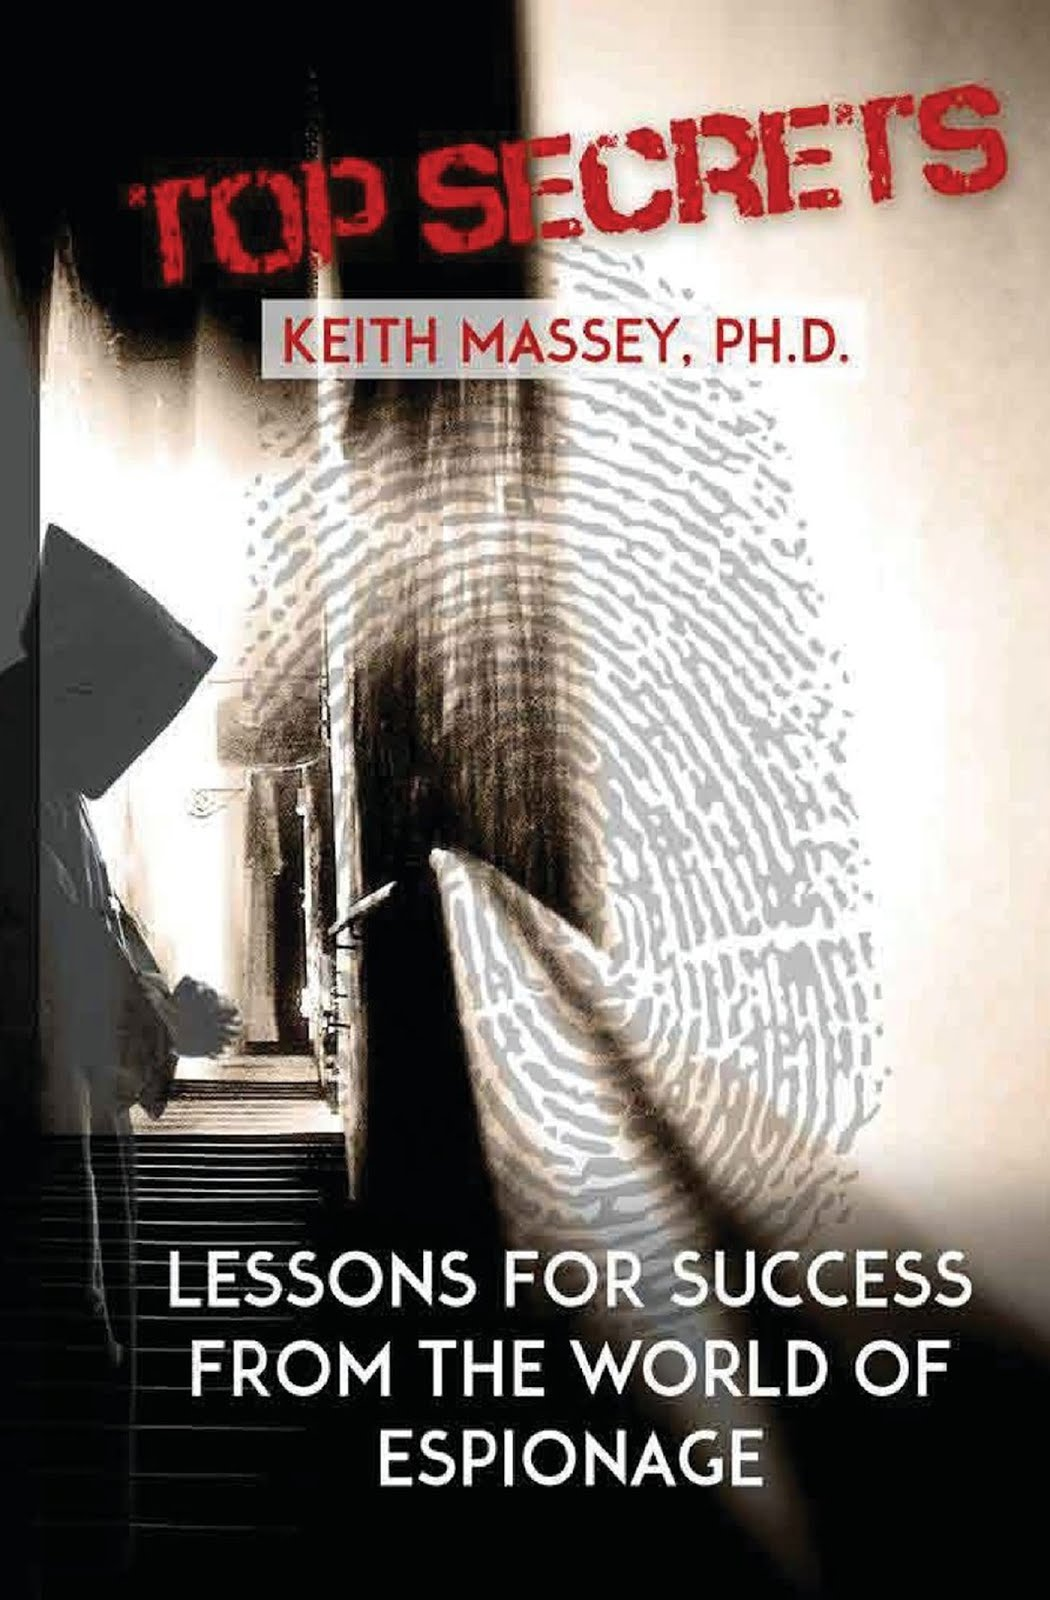 You want to succeed. Lessons from the world of espionage can help you achieve your goals!